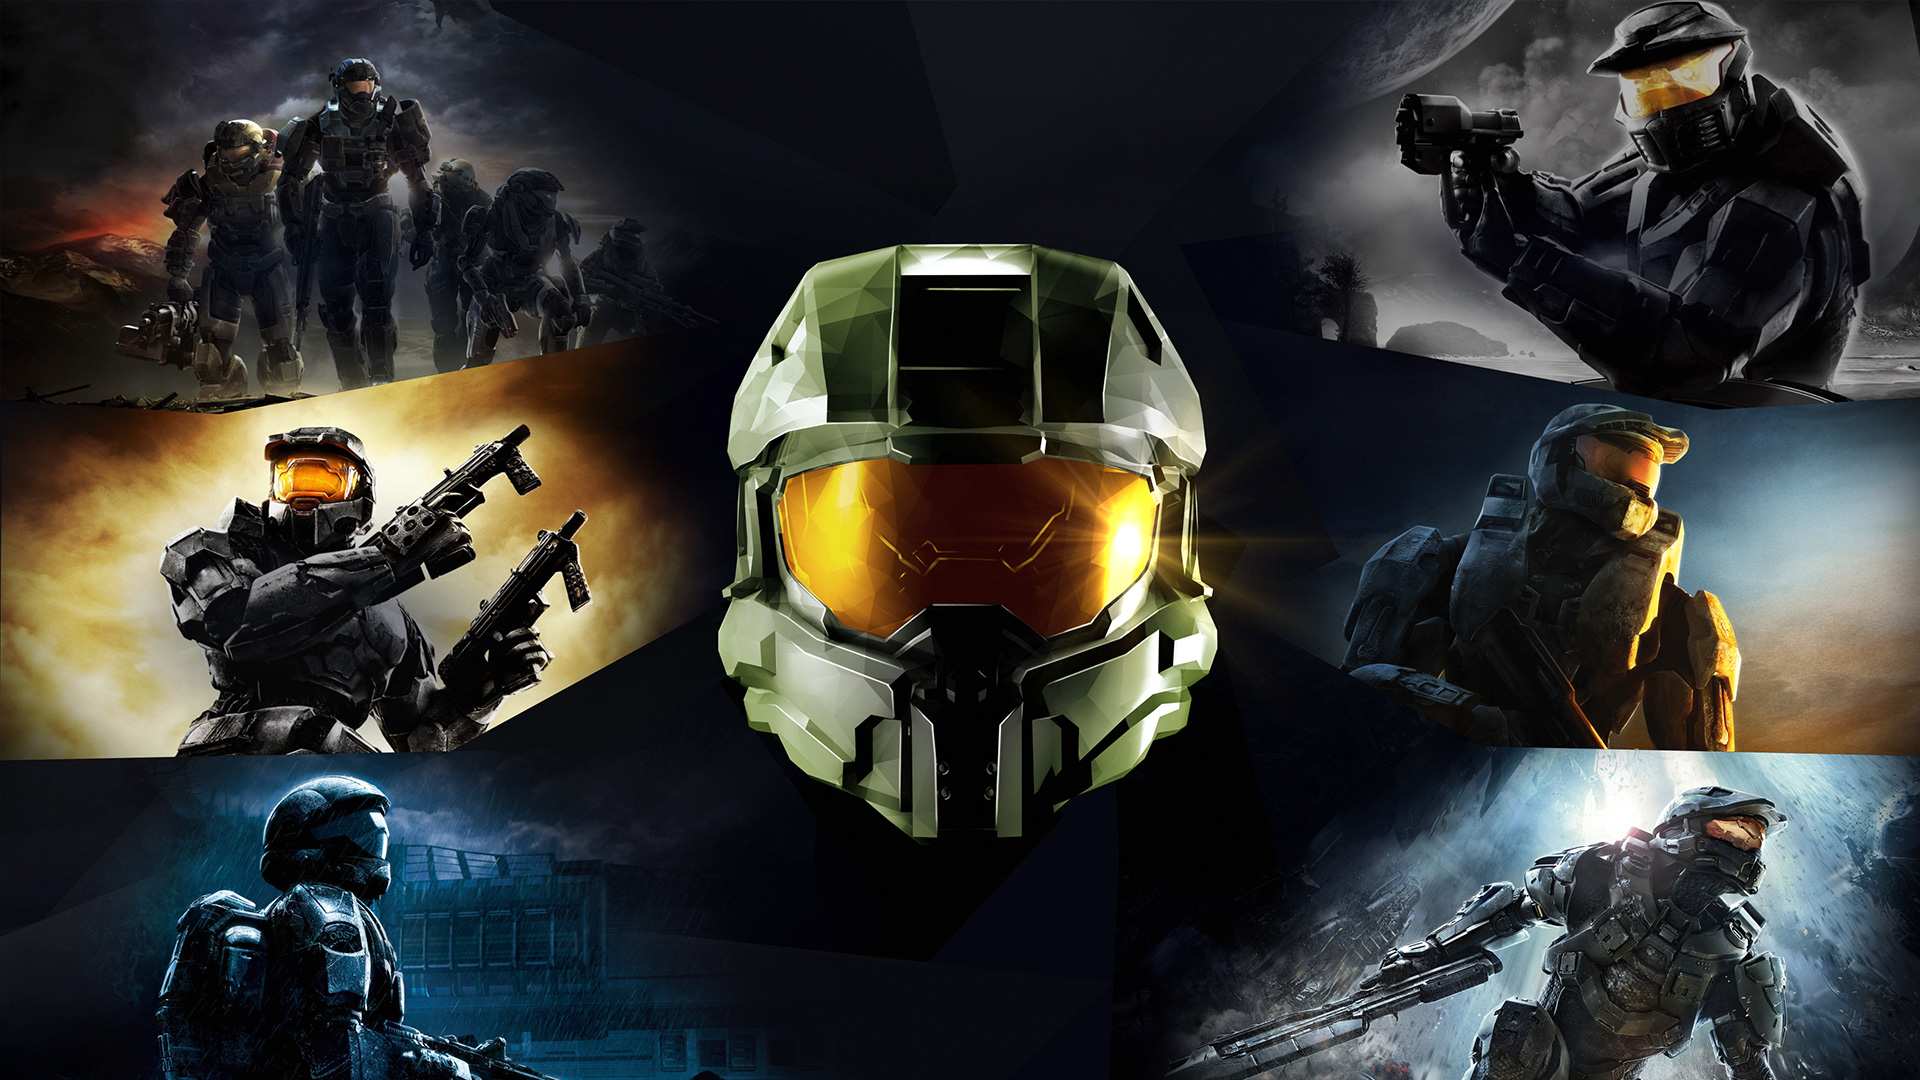 Game art for Halo: The Master Chief Collection, showing Master Chief in various Halo games